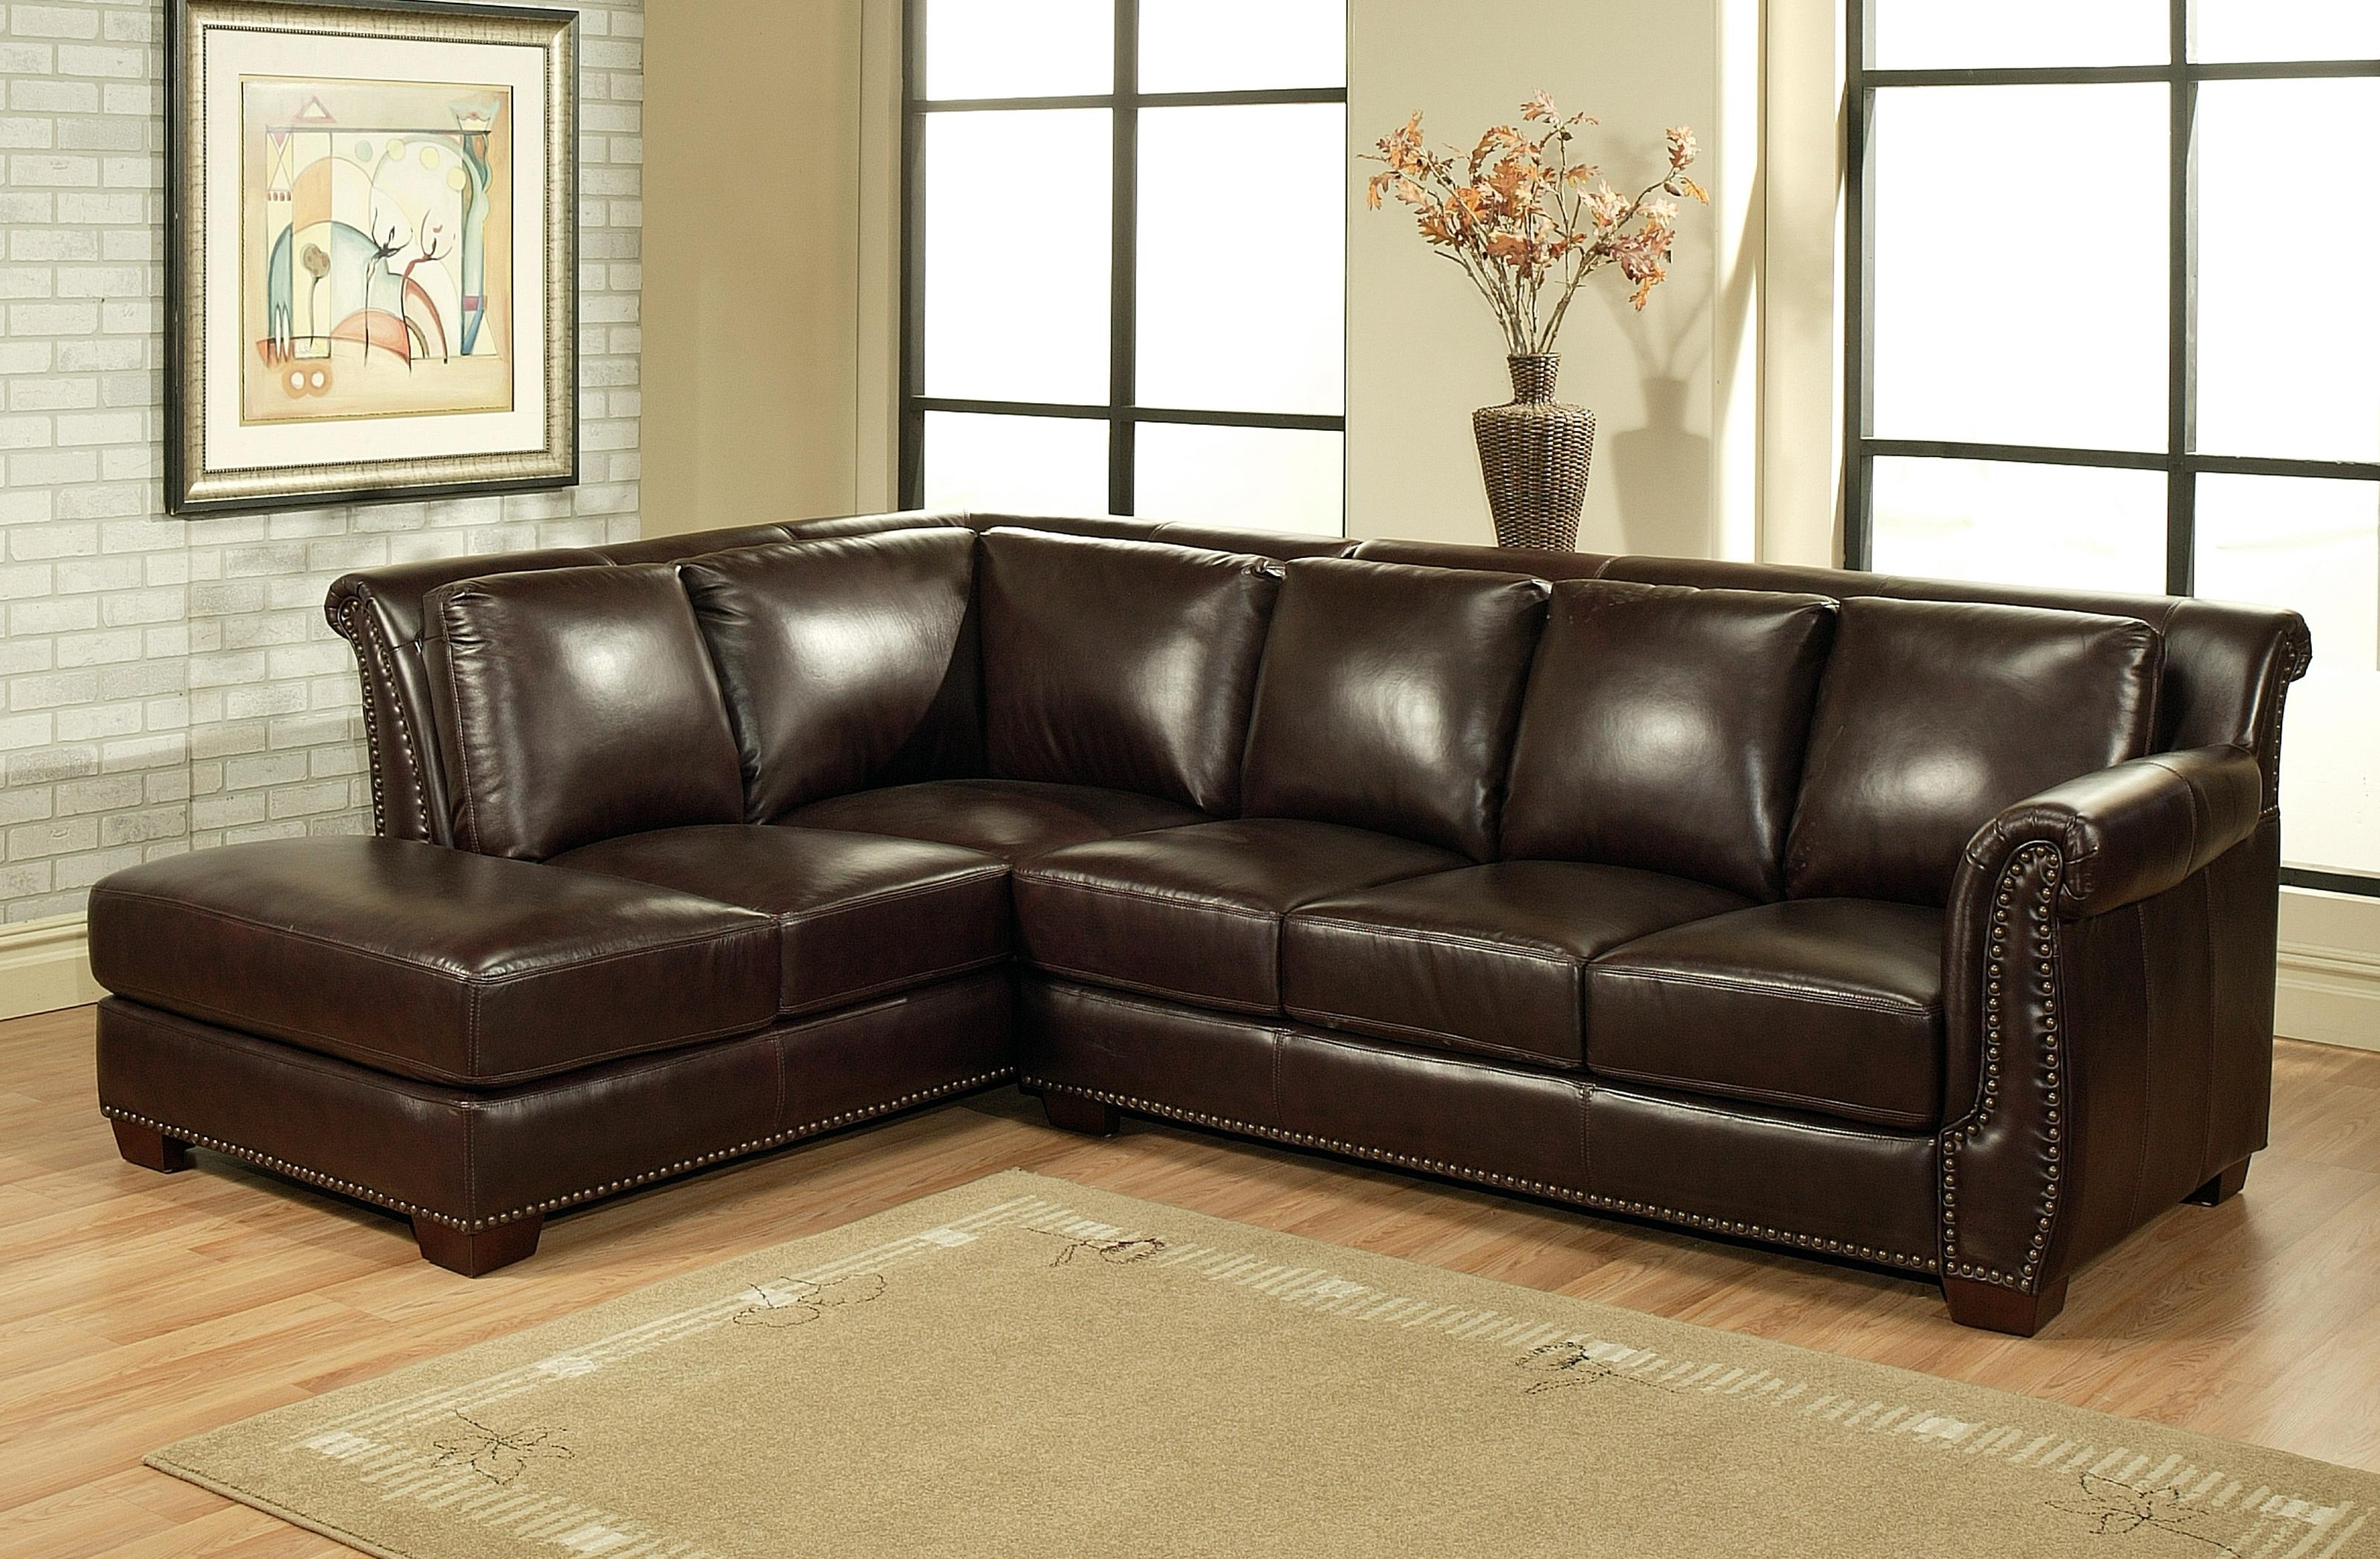 Newest Leather L Shaped Sectional Sofas In Ikea Couch Bed U Shaped Sectional Costco Leather Recliner Large (View 10 of 20)